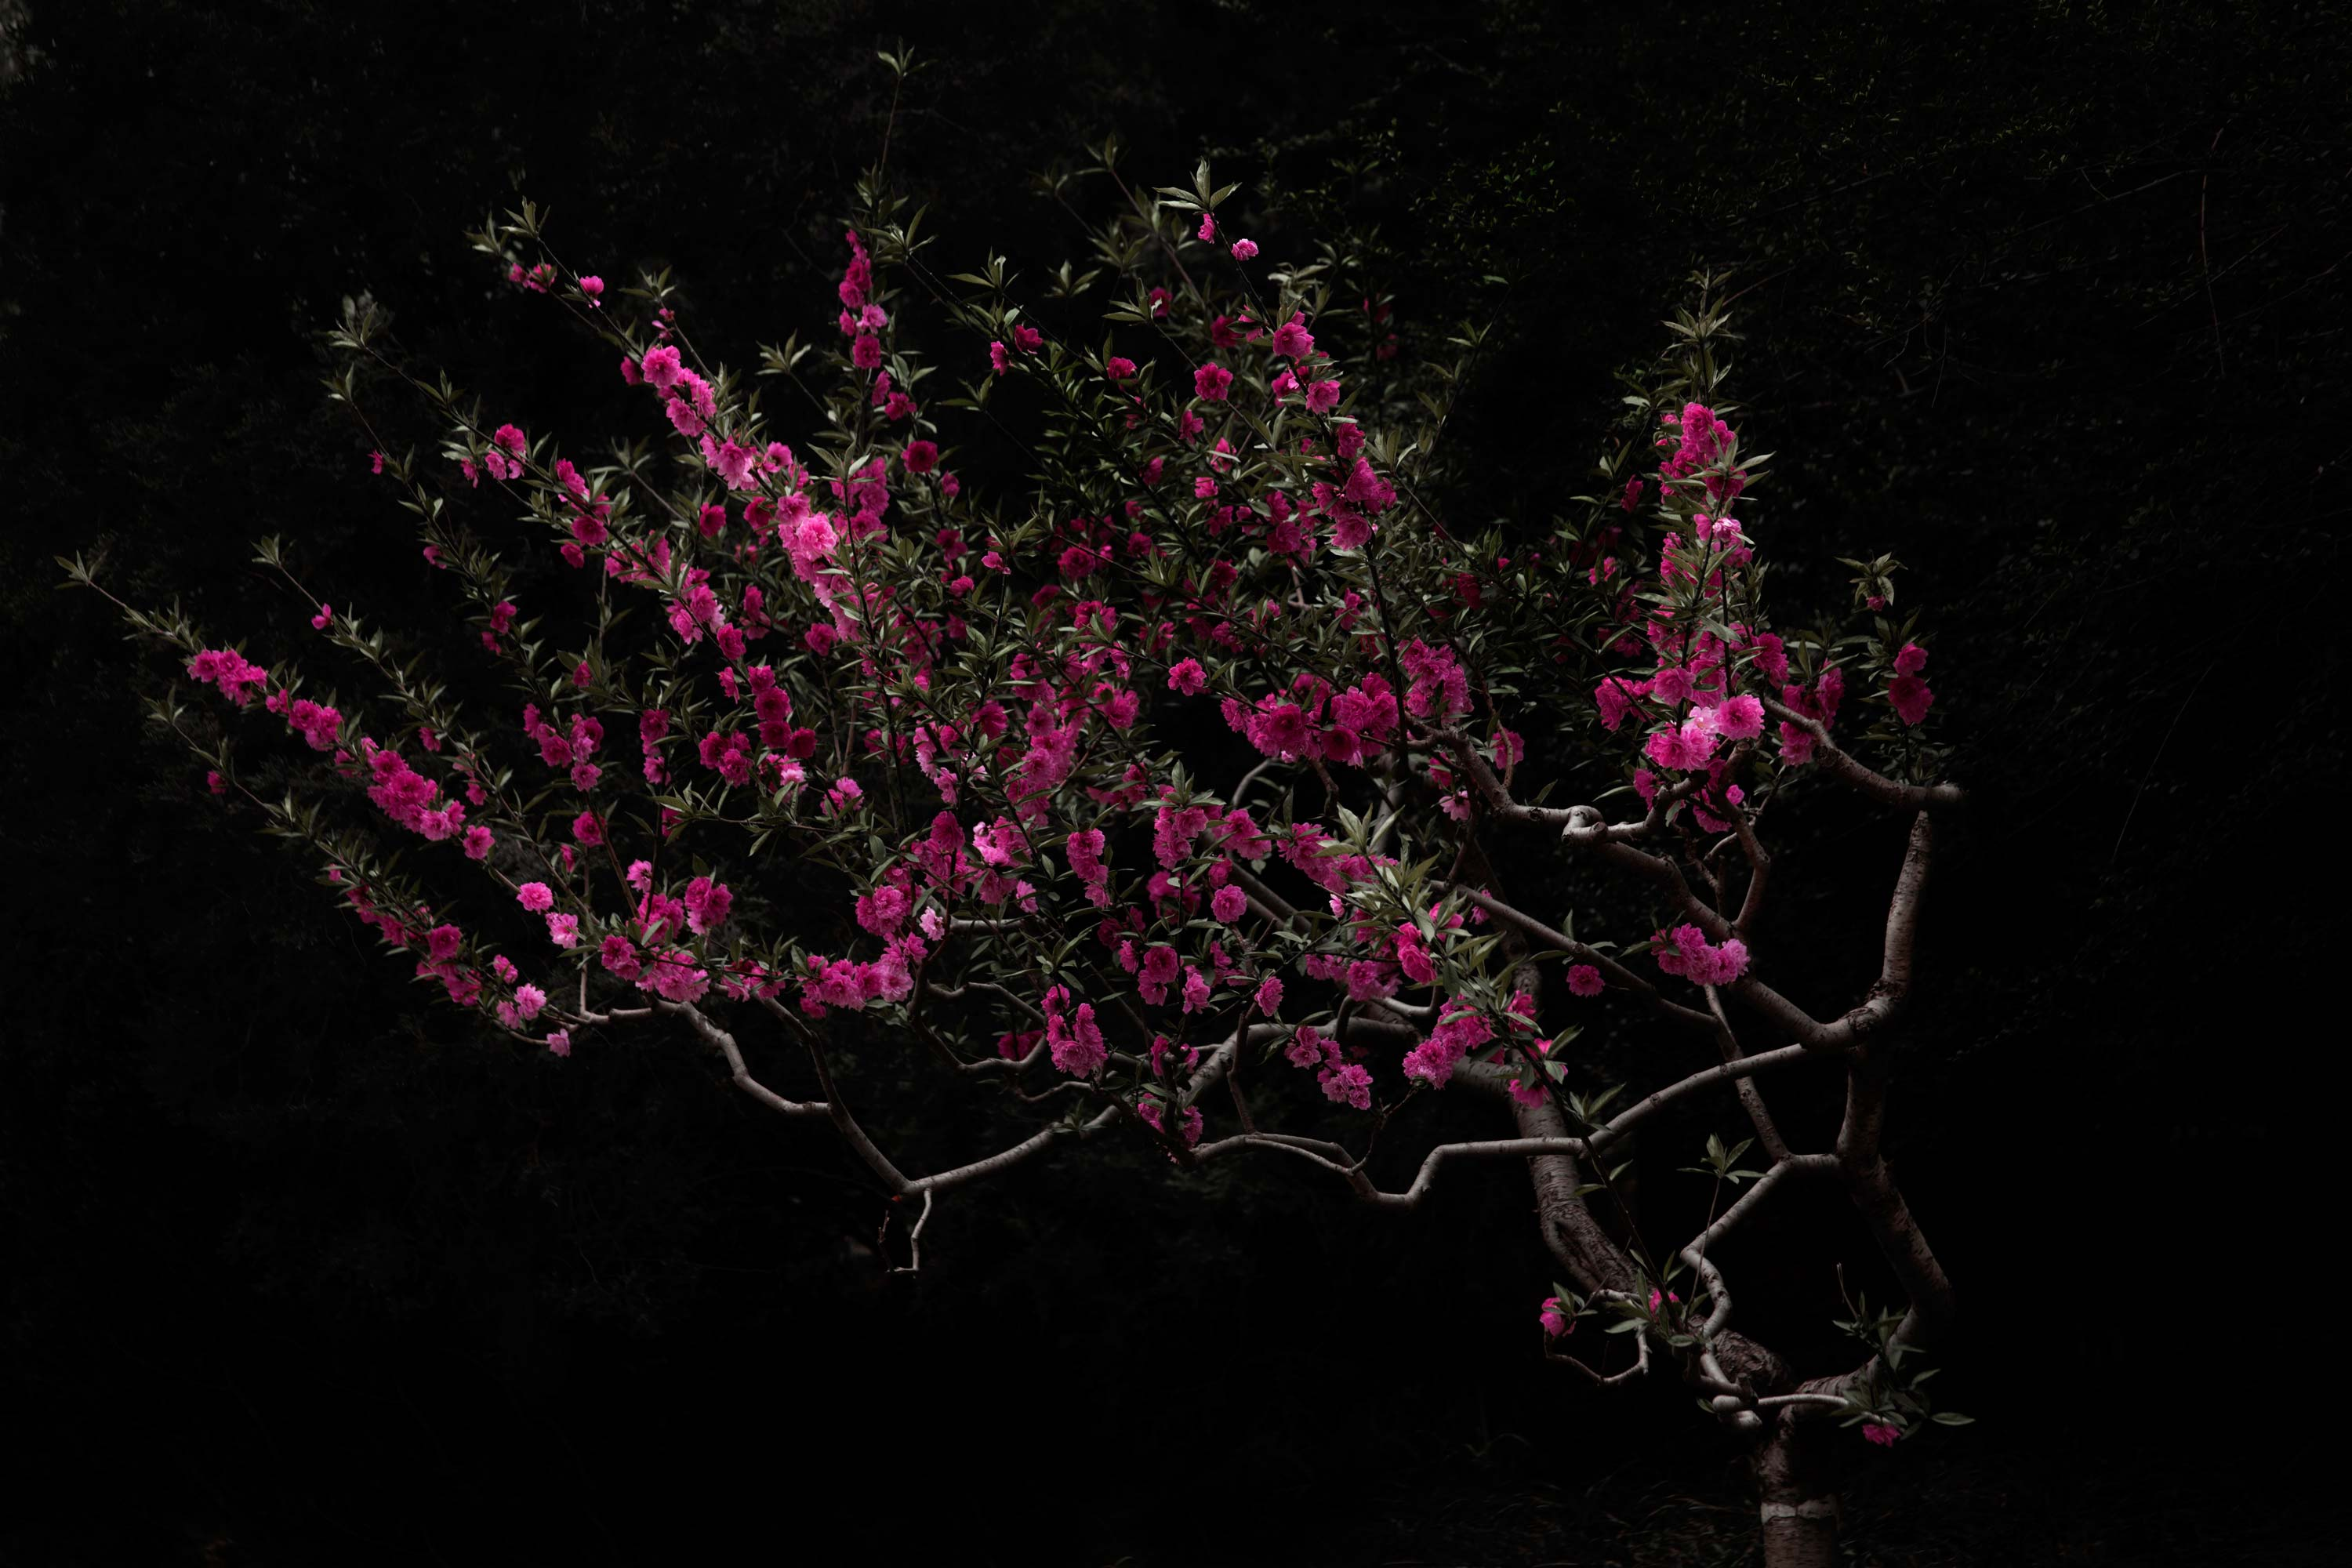 ©-Shen-Wei,-Peach-Tree,-2016,-Chromogenic-print.-Courtesy-of-Flowers-Gallery,-London-and-New-York